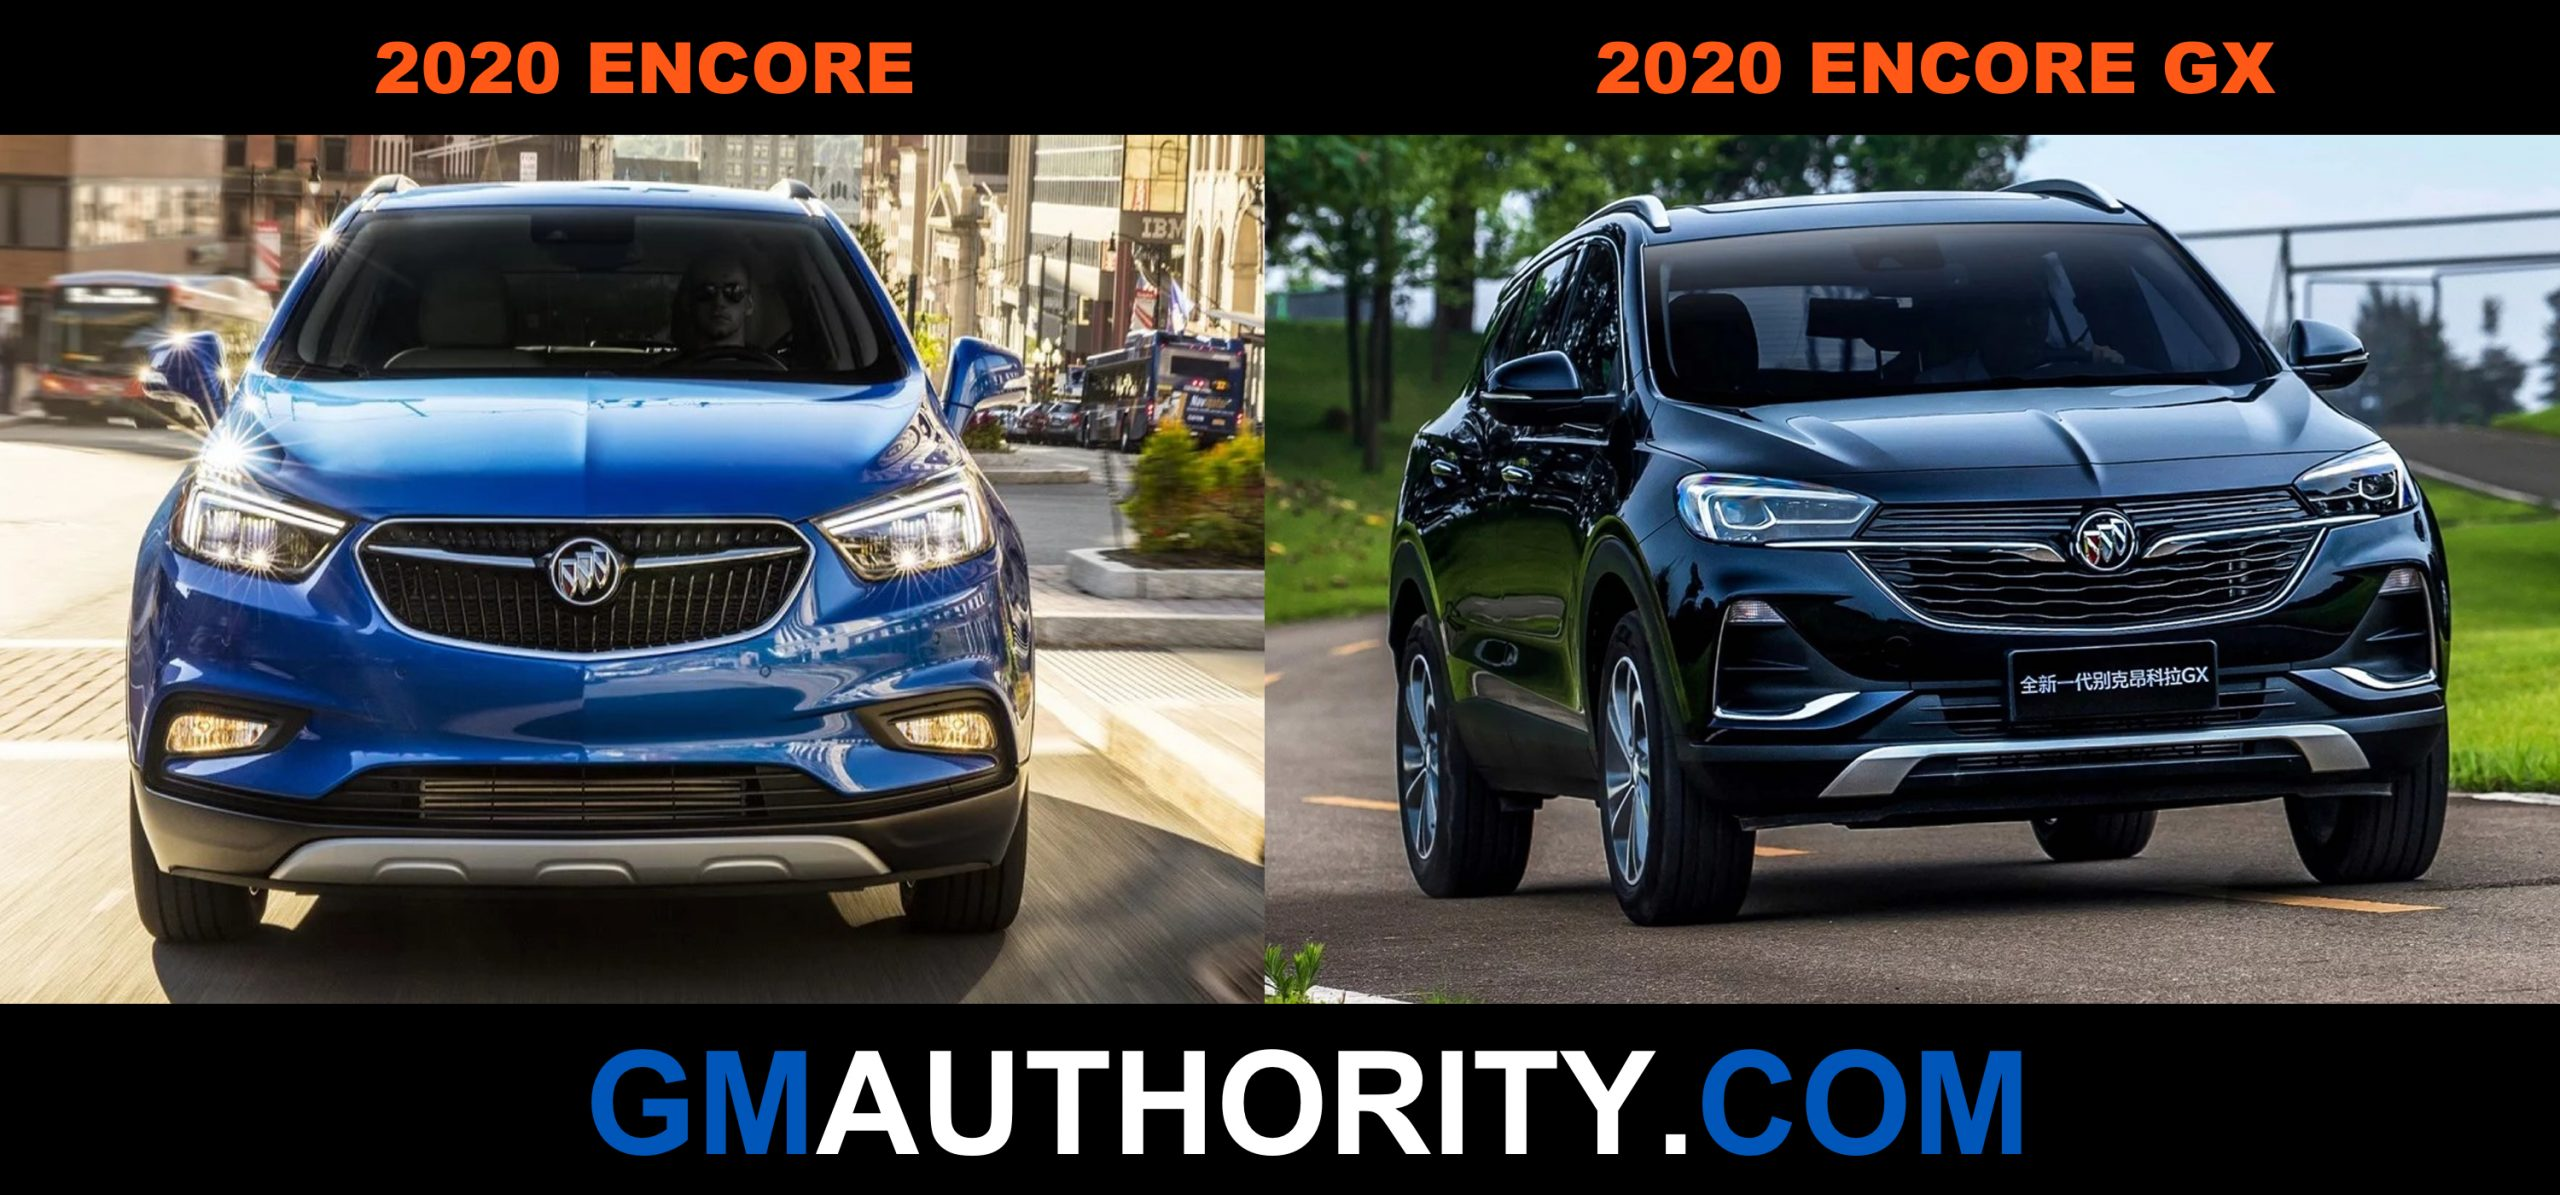 Buick Encore Vs. Buick Encore Gx: Visual Comparison | Gm 2022 Buick Encore Gx Build And Price, Build, Colors